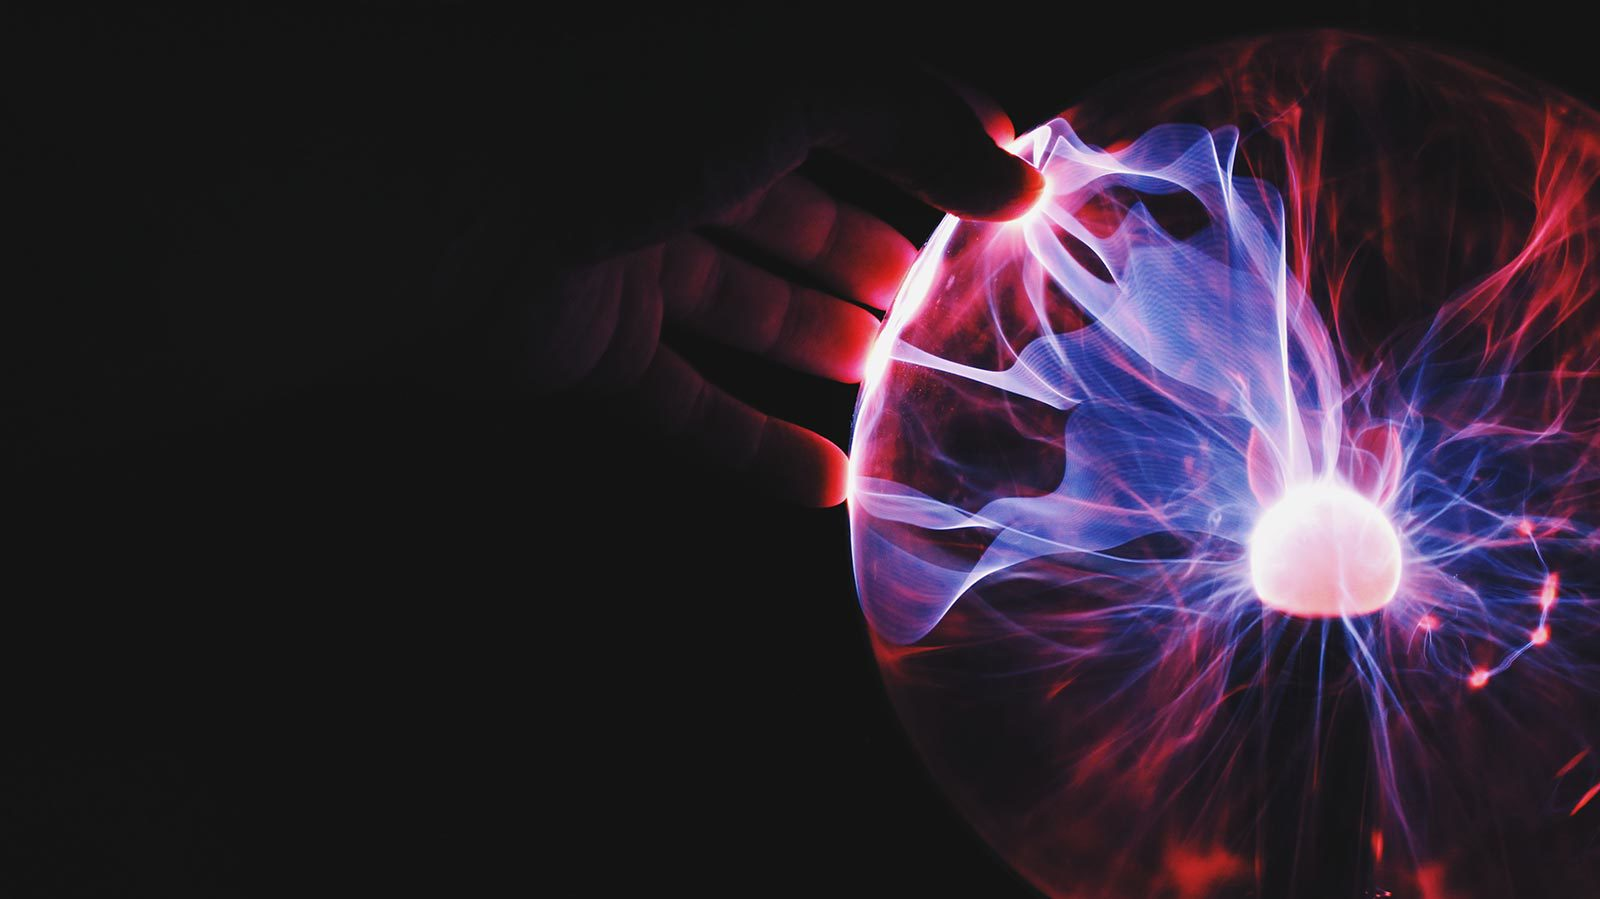 Hand touching red and purple plasma ball.